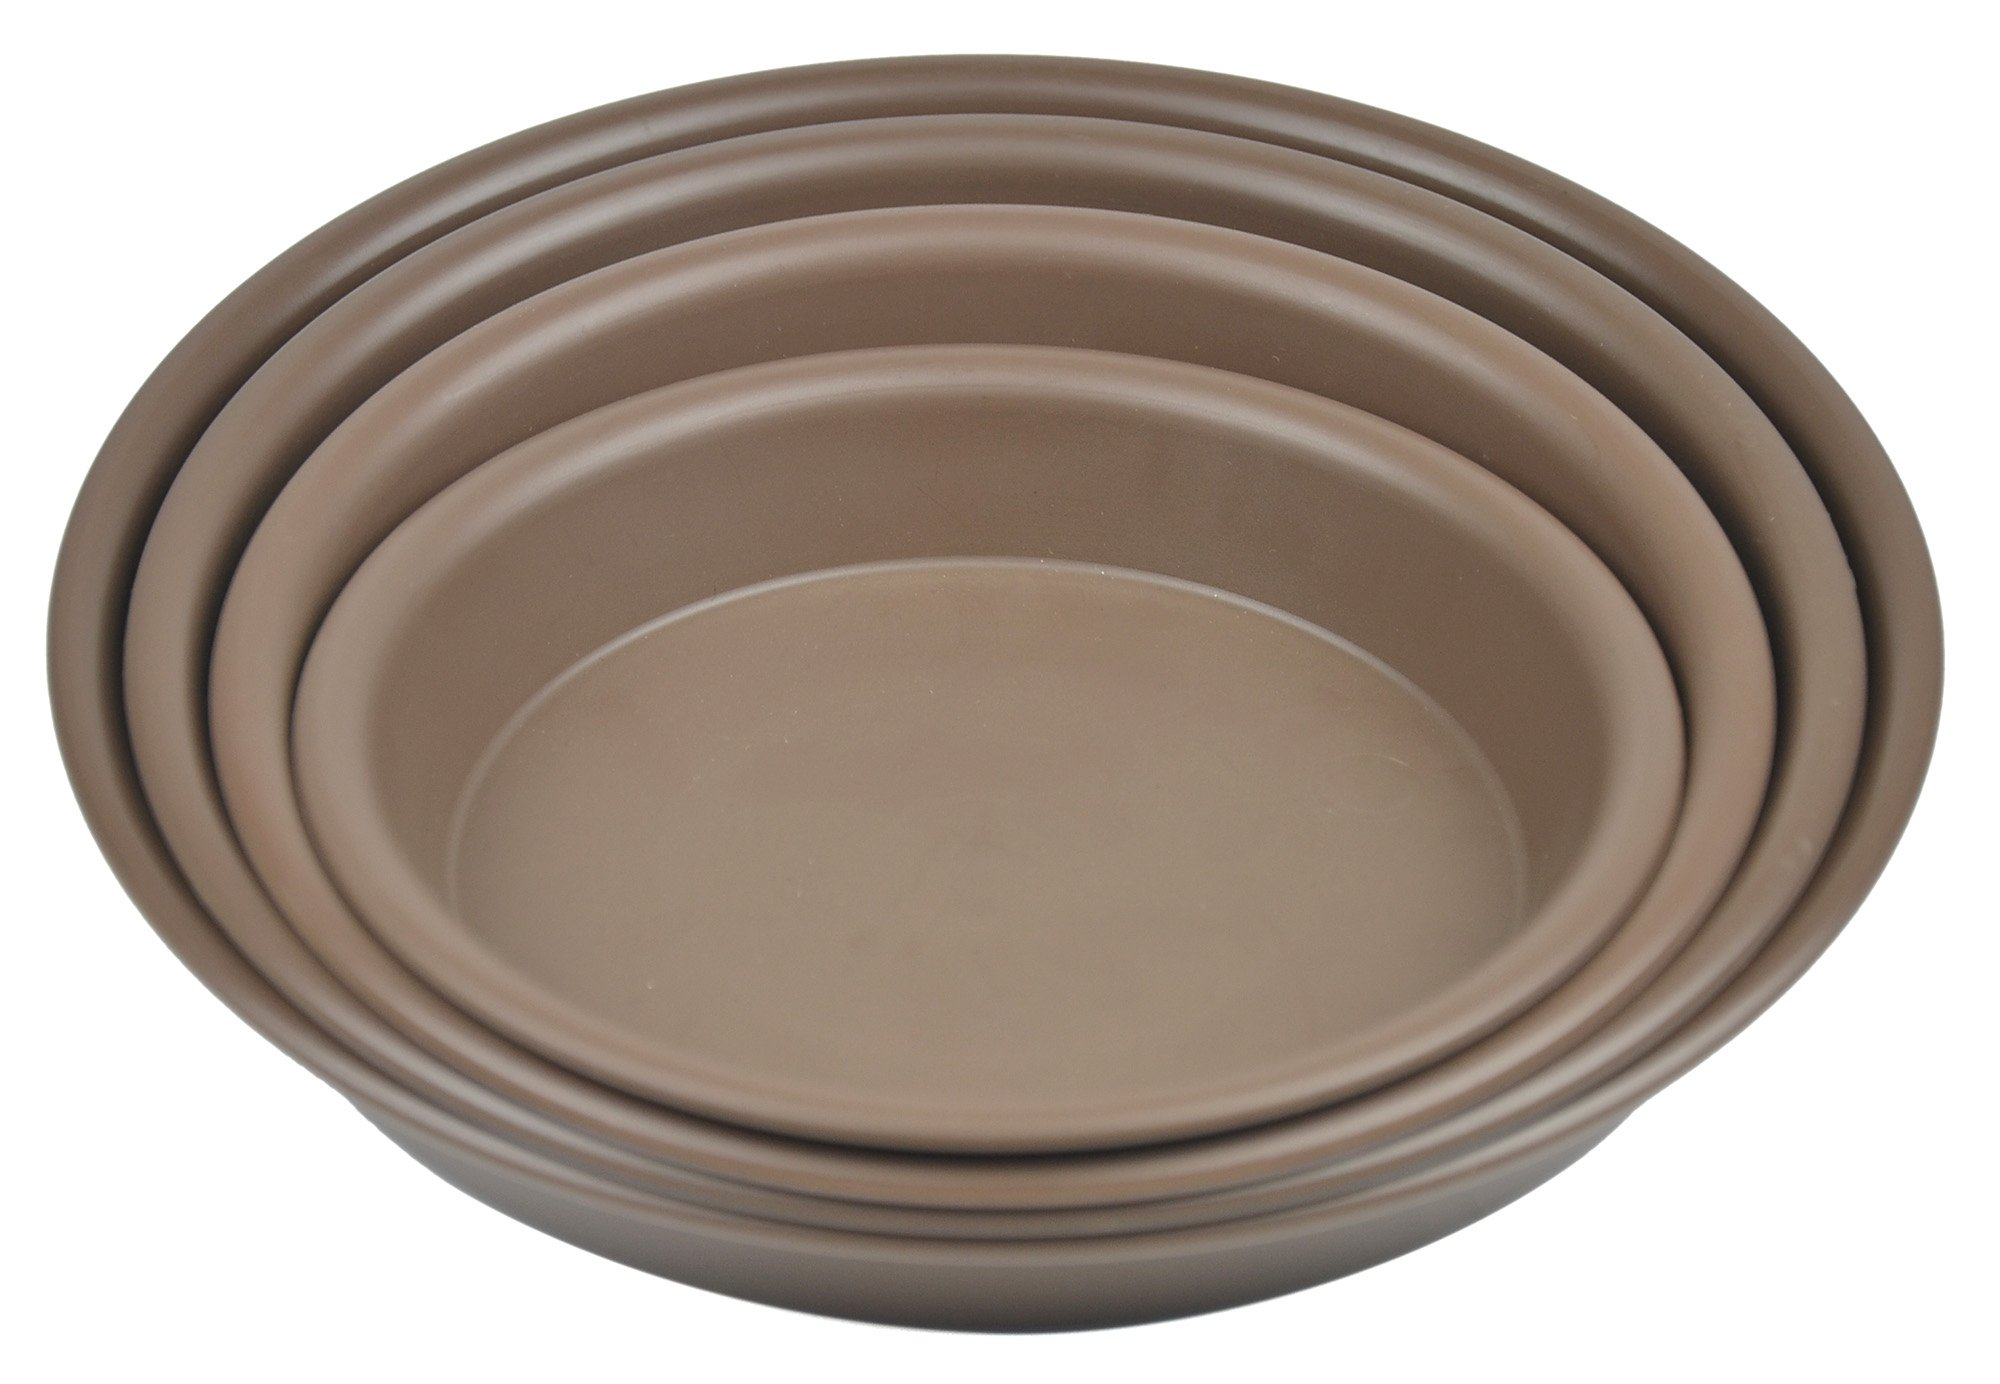 7.7'' Round Plant Saucer Planter Tray Pat Pallet for Flowerpot,Coffee,960 Count by Zhanwang